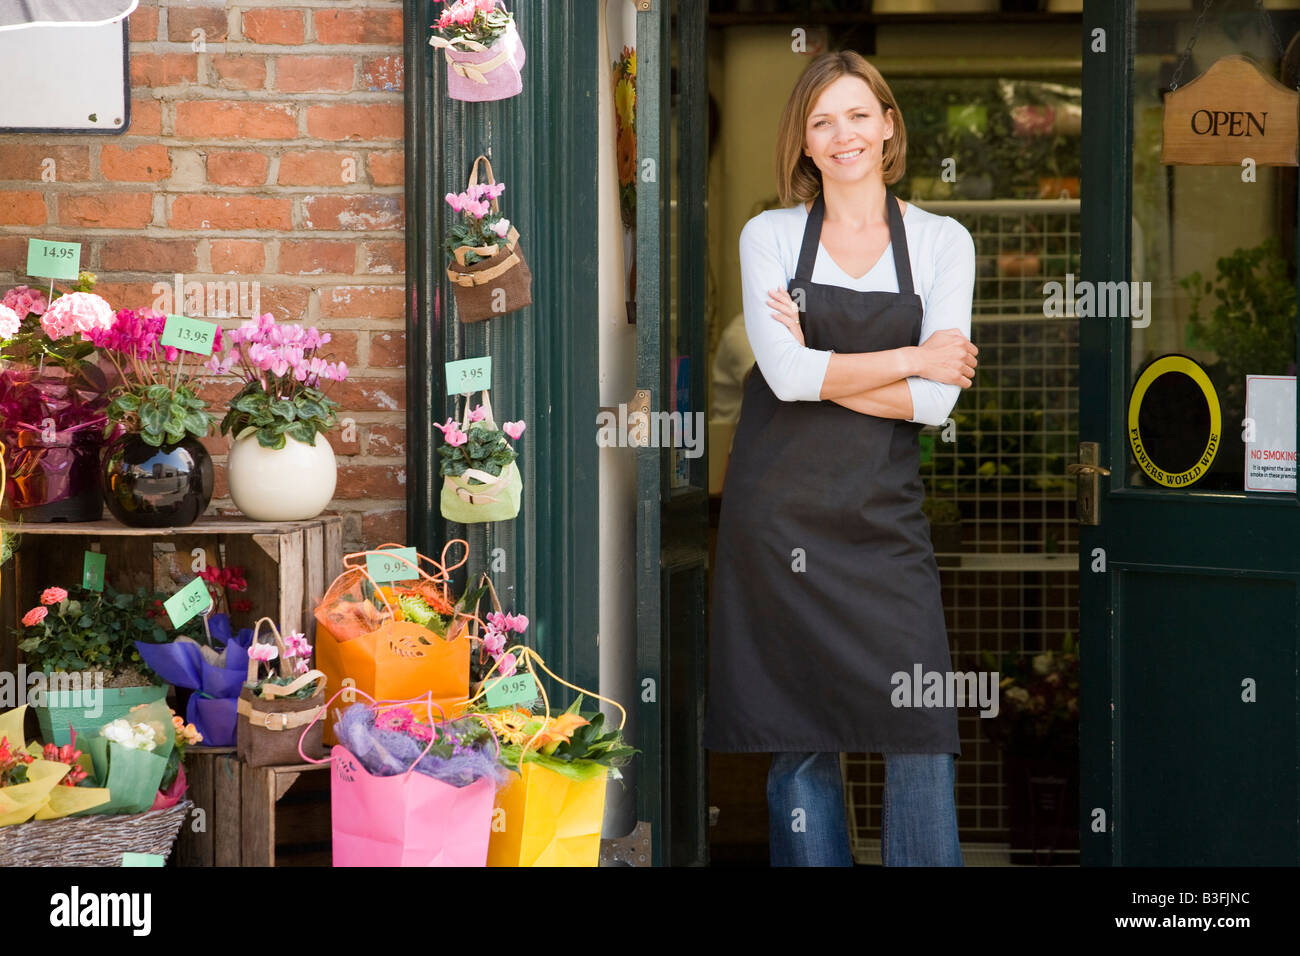 Woman working at flower shop smiling - Stock Image